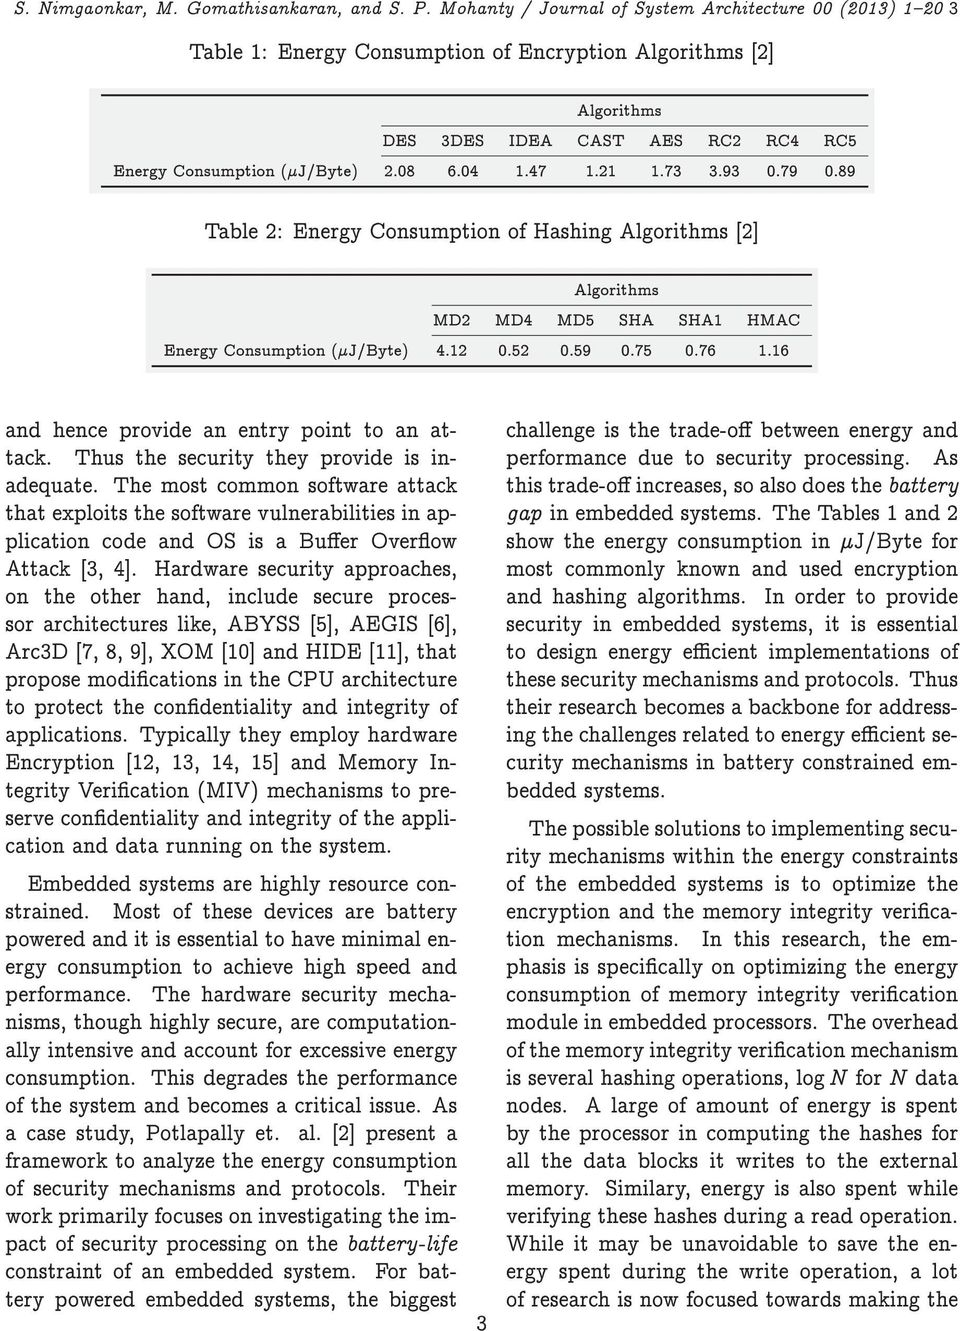 47 1.21 1.73 3.93 0.79 0.89 Table 2: Energy Consumption of Hashing Algorithms [2] Algorithms MD2 MD4 MD5 SHA SHA1 HMAC Energy Consumption (J/Byte) 4.12 0.52 0.59 0.75 0.76 1.